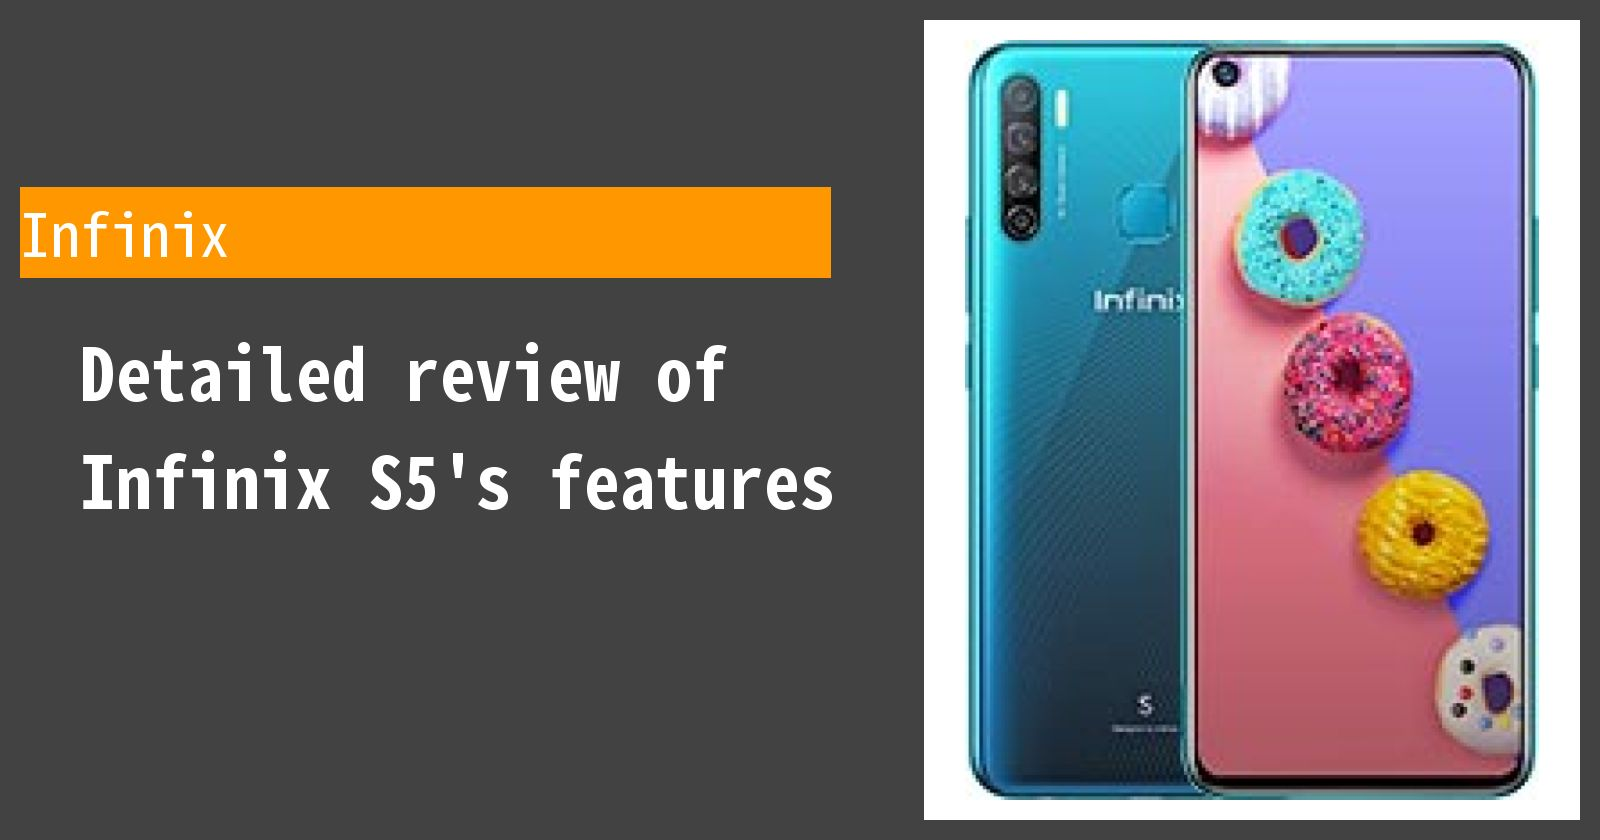 Detailed review of Infinix S5's features